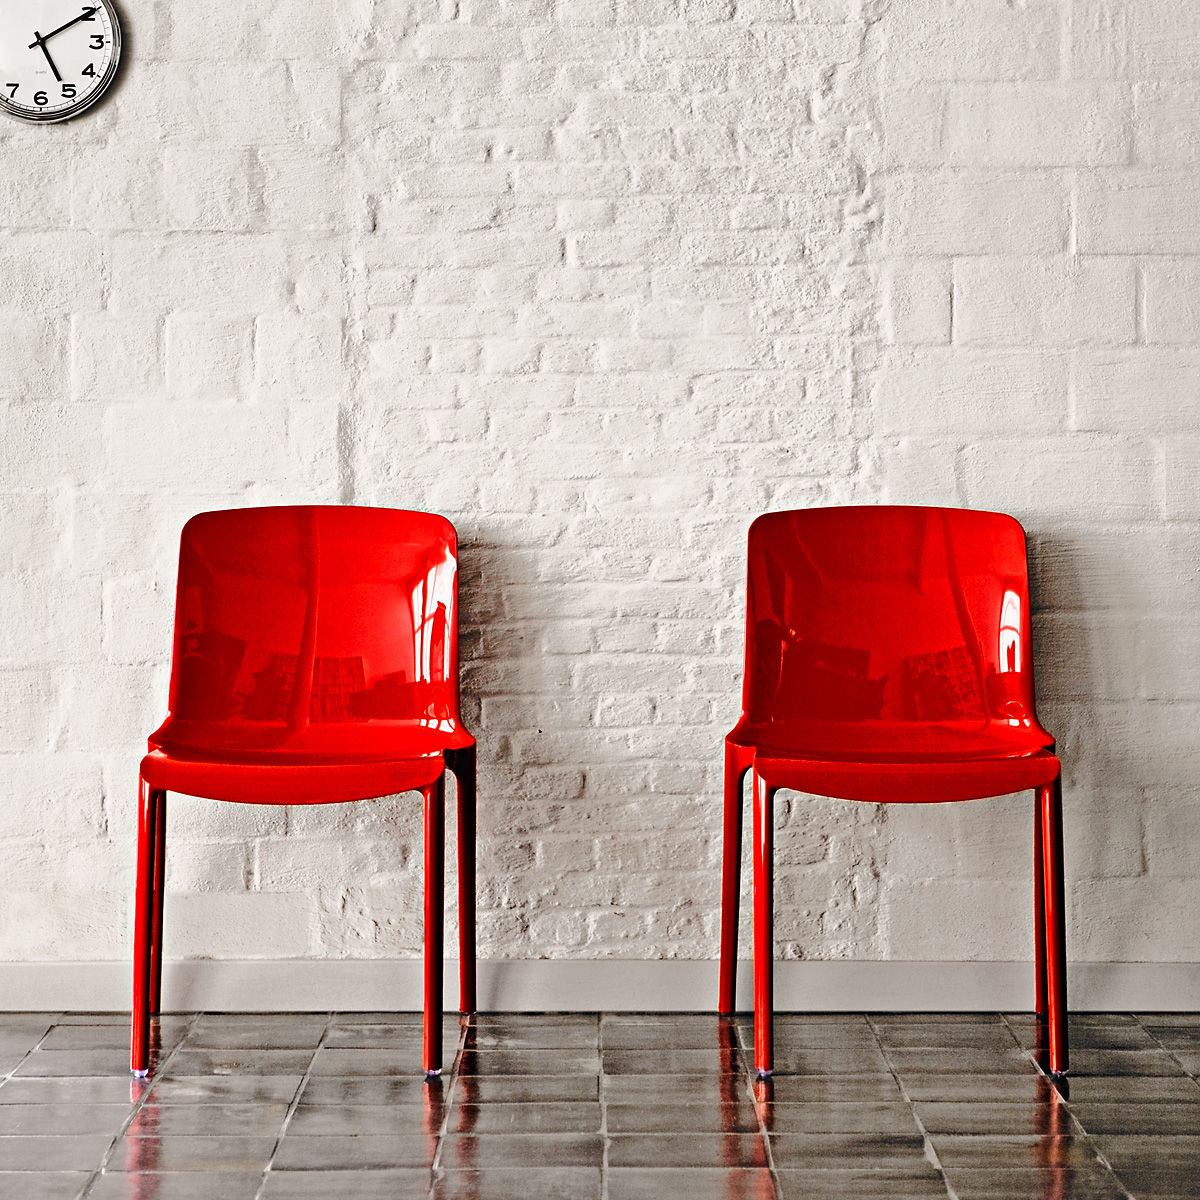 Ghent_interior-red_chairs